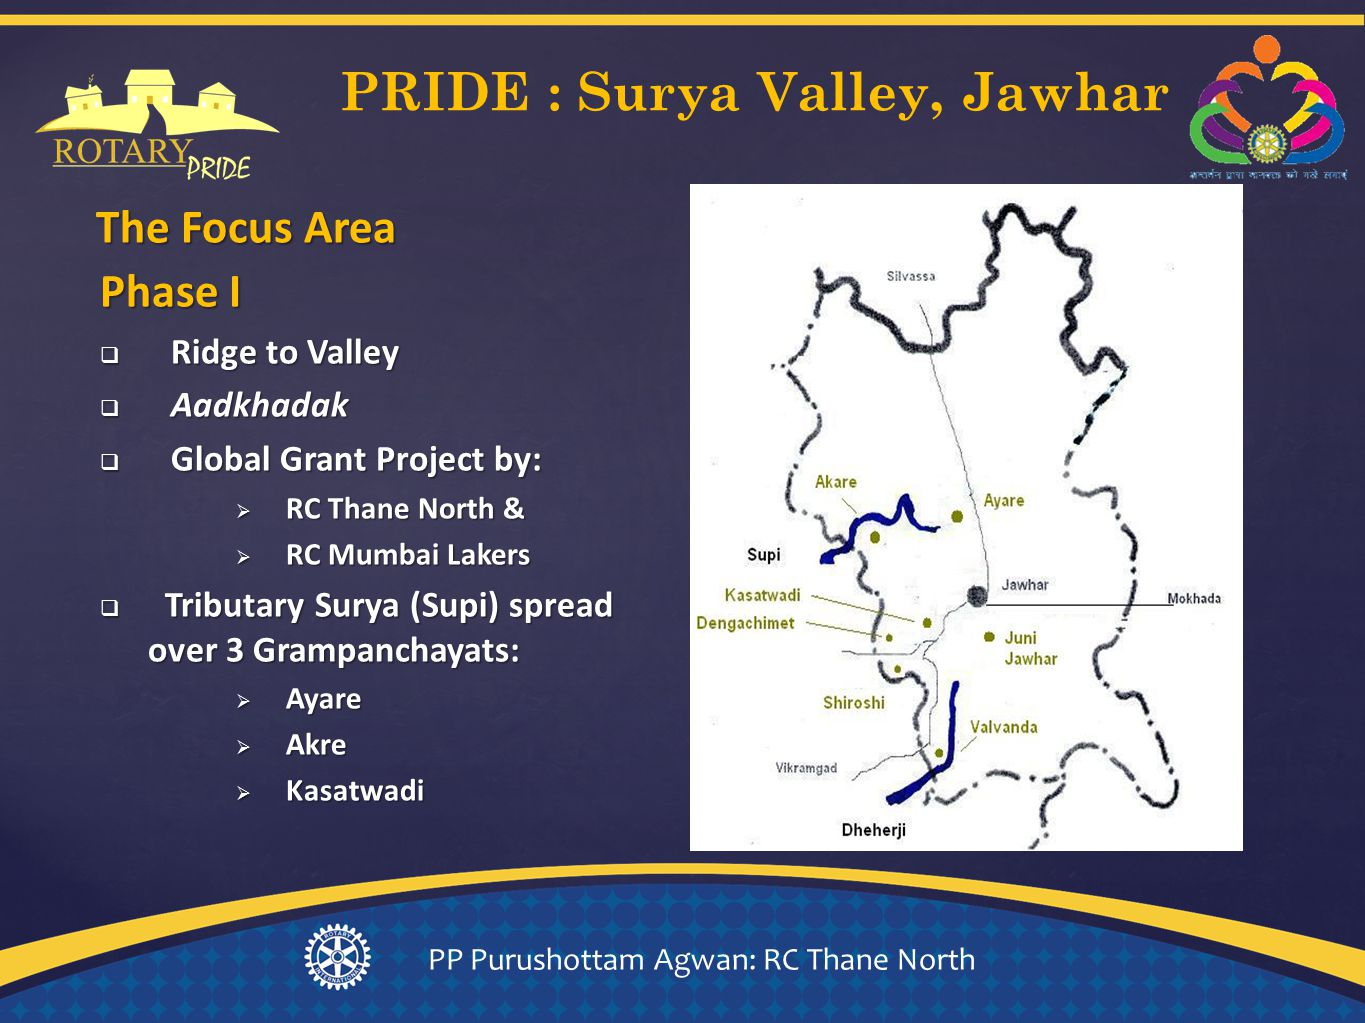 { Phase I  Ridge to Valley  Aadkhadak  Global Grant Project by:  RC Thane North &  RC Mumbai Lakers  Tributary Surya (Supi) spread over 3 Grampanchayats:  Ayare  Akre  Kasatwadi The Focus Area PRIDE : Surya Valley, Jawhar PP Purushottam Agwan: RC Thane North